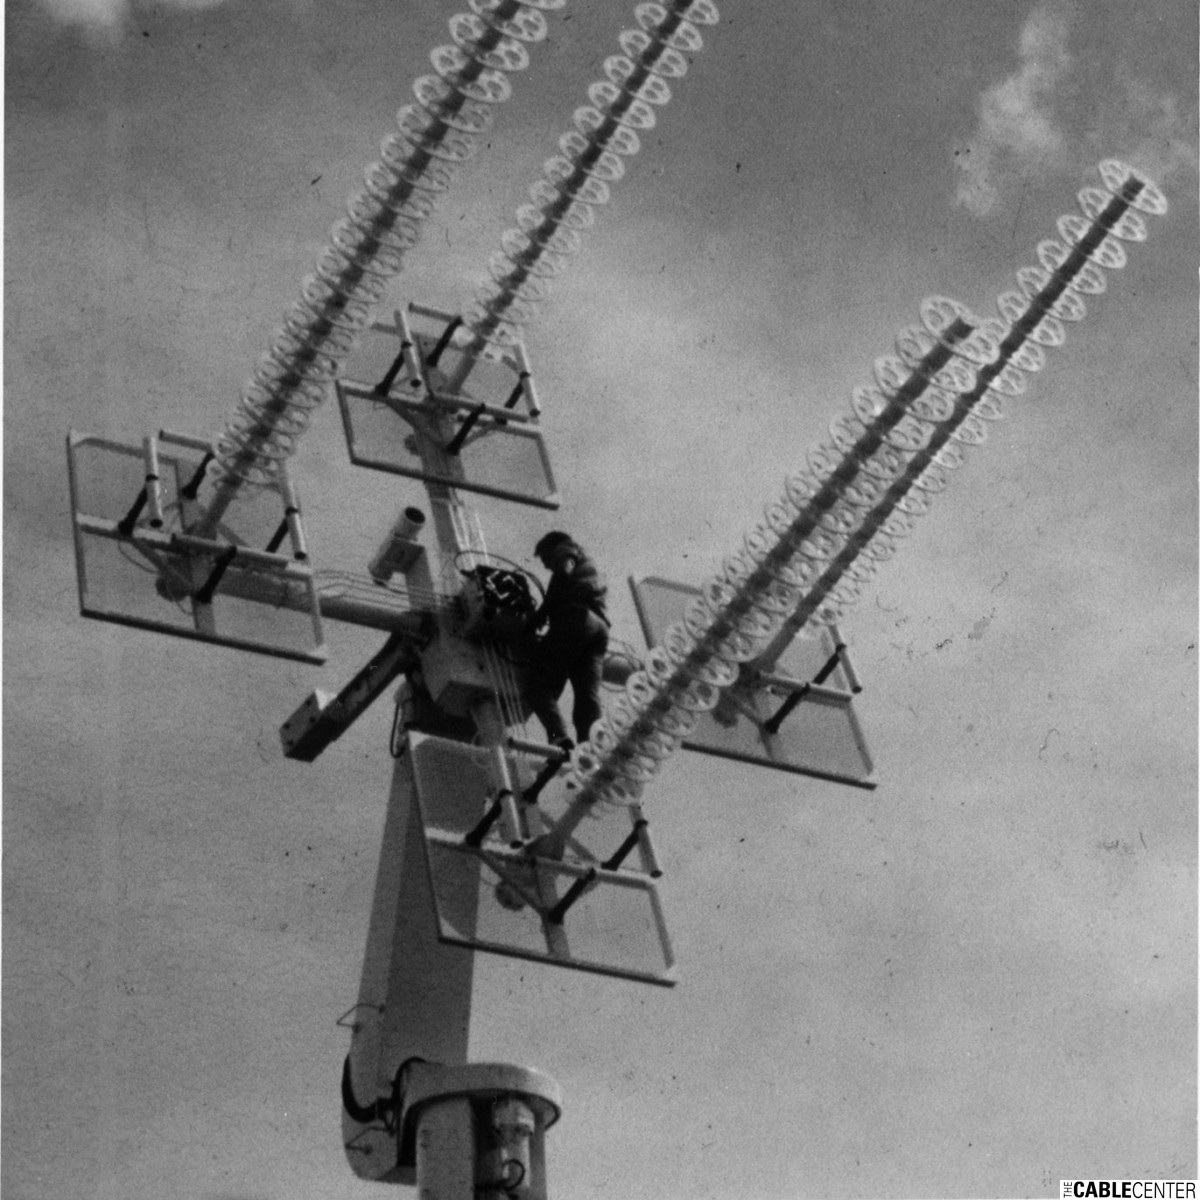 Man working on antenna array